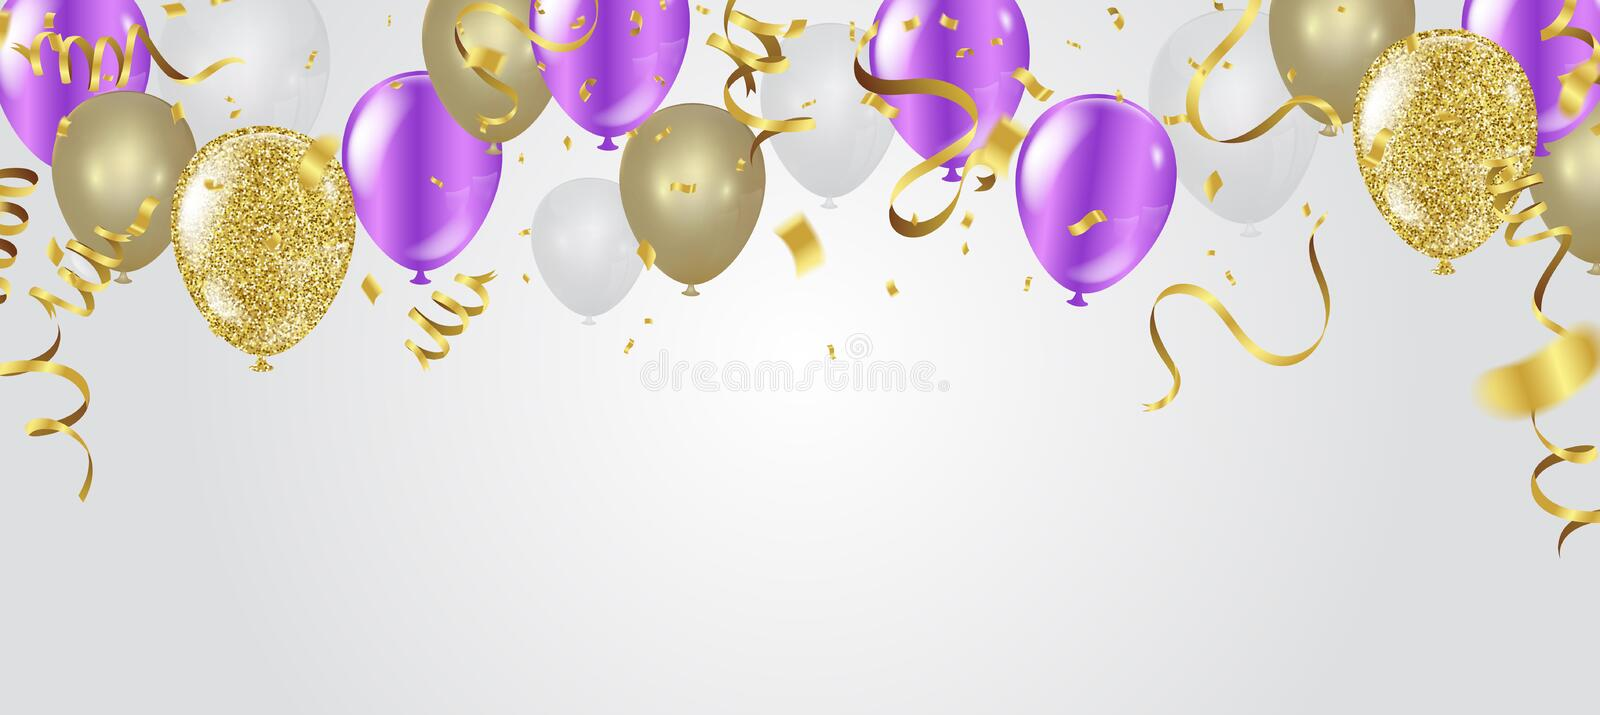 Color flying balloons isolated on . background with colorful balloons. celebration party print design royalty free illustration